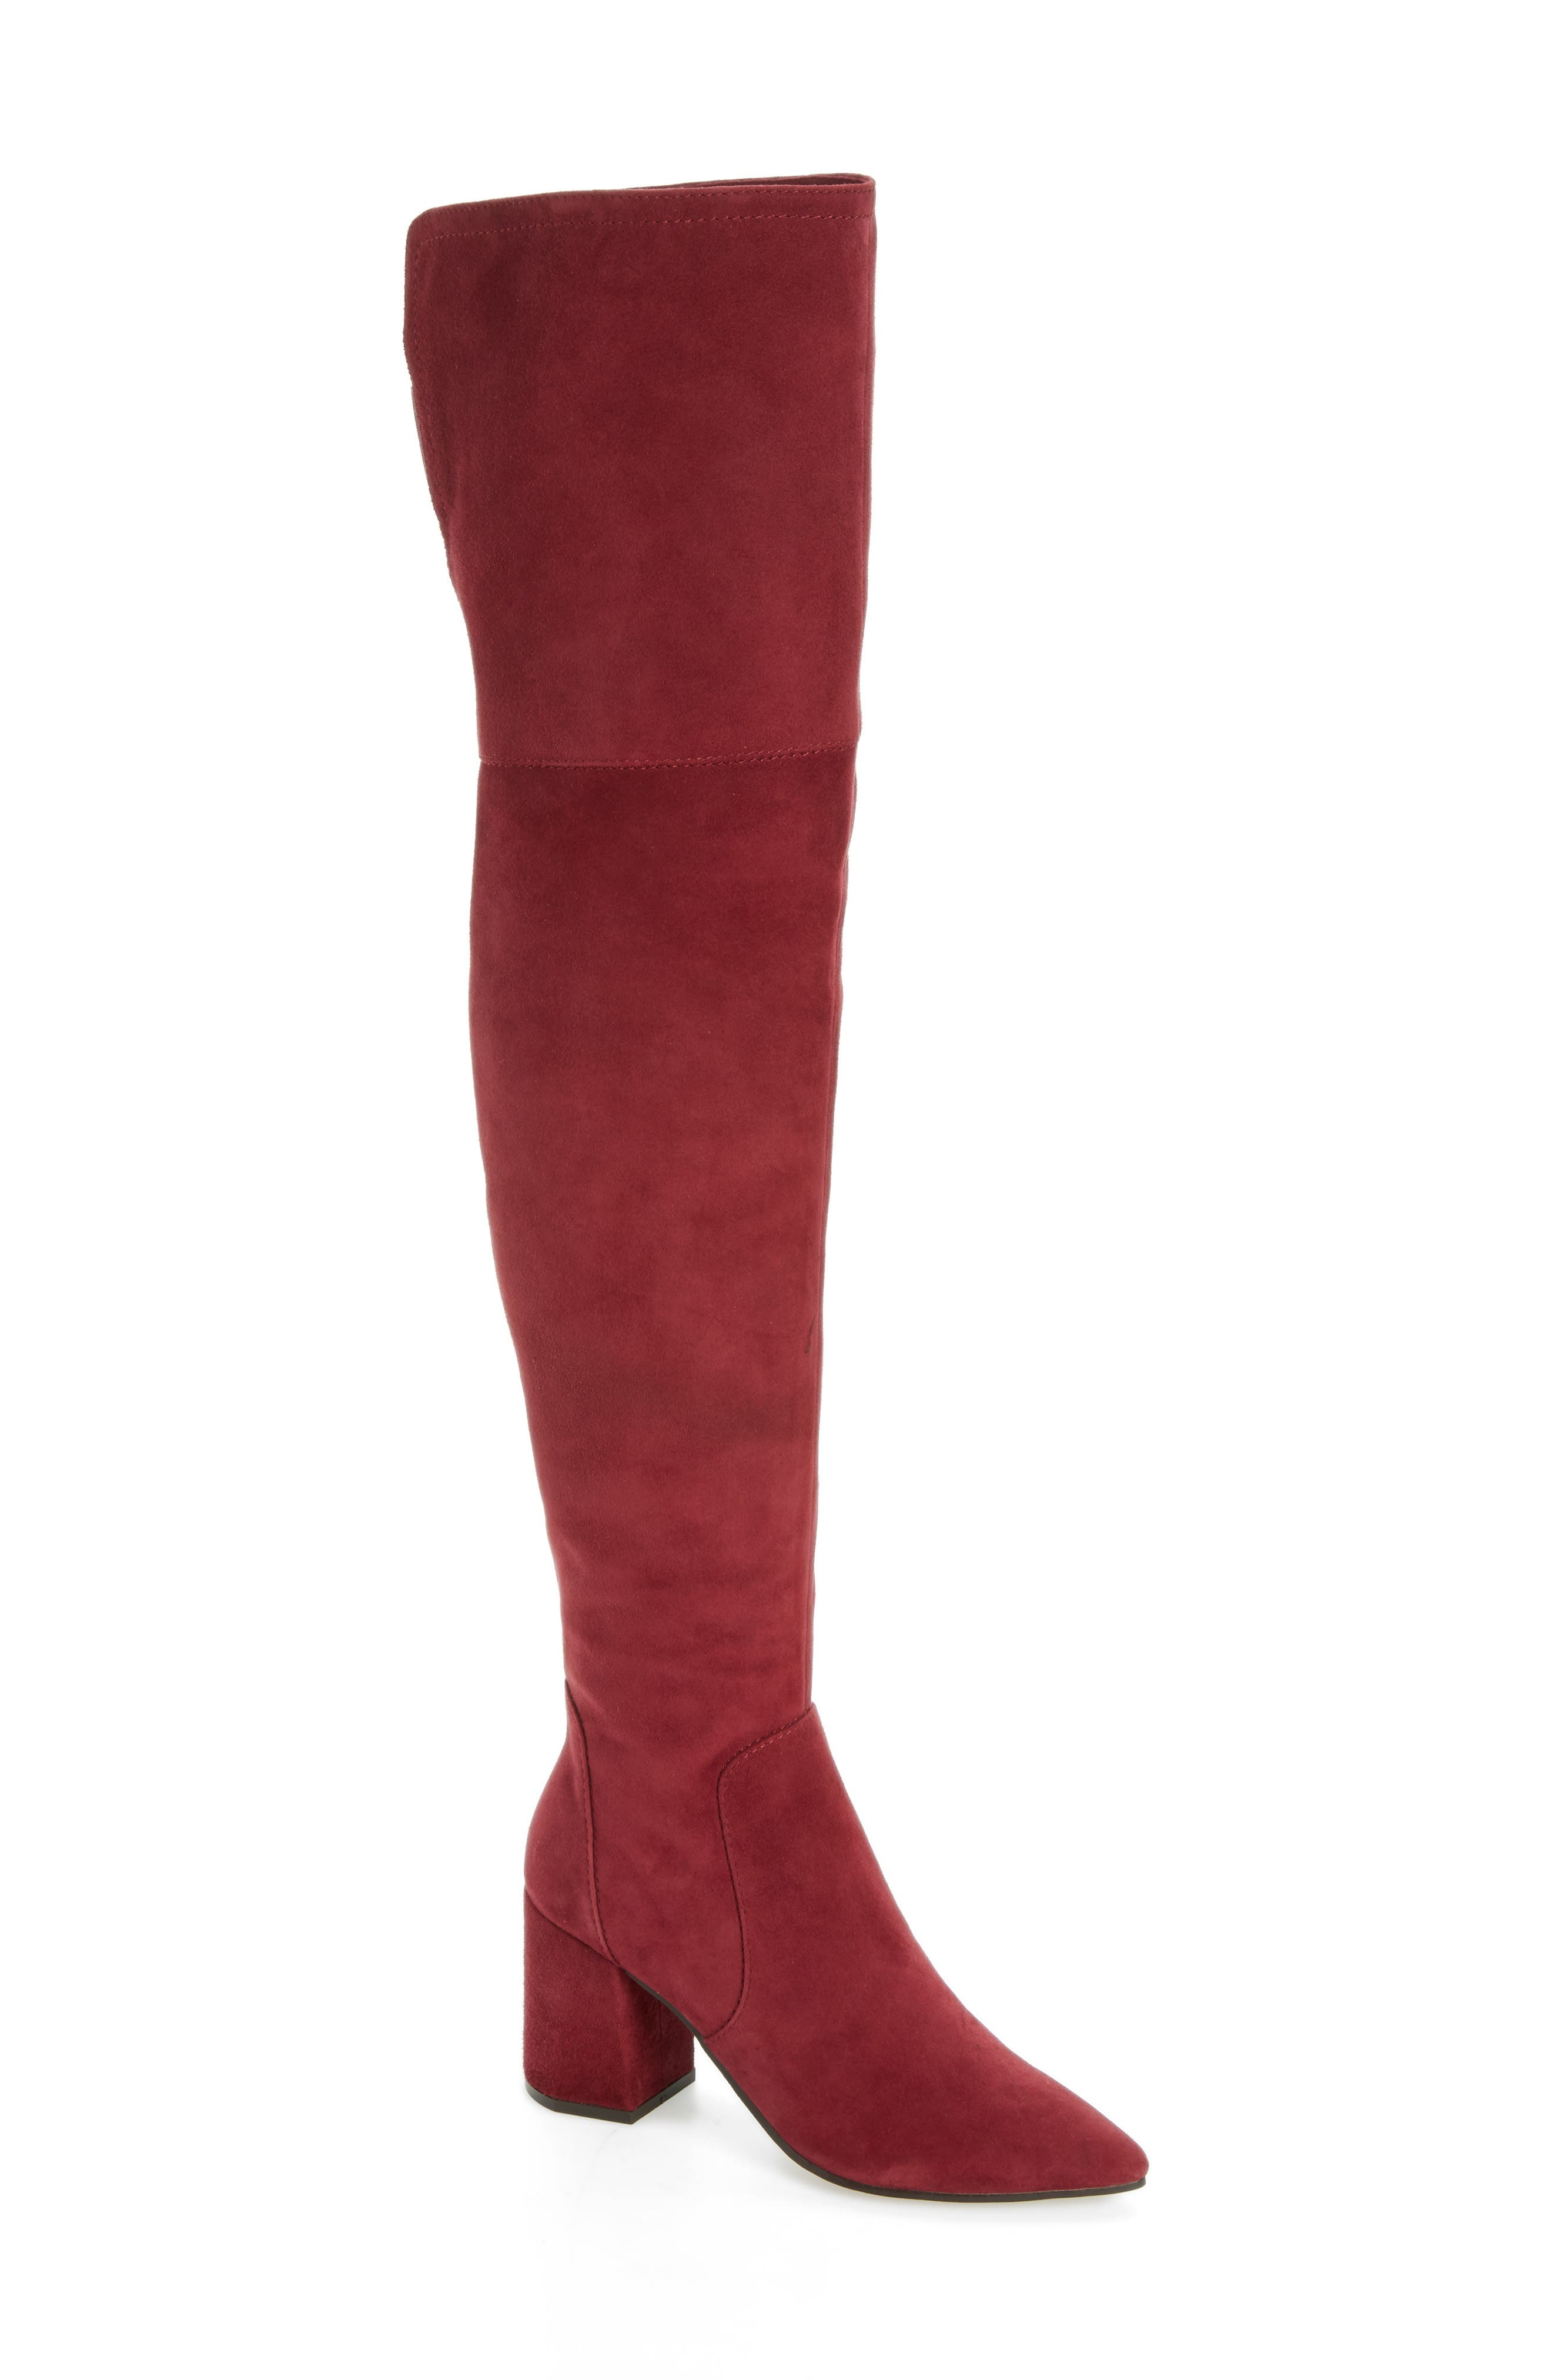 Linea Paolo Bella Over the Knee Boot (Women)